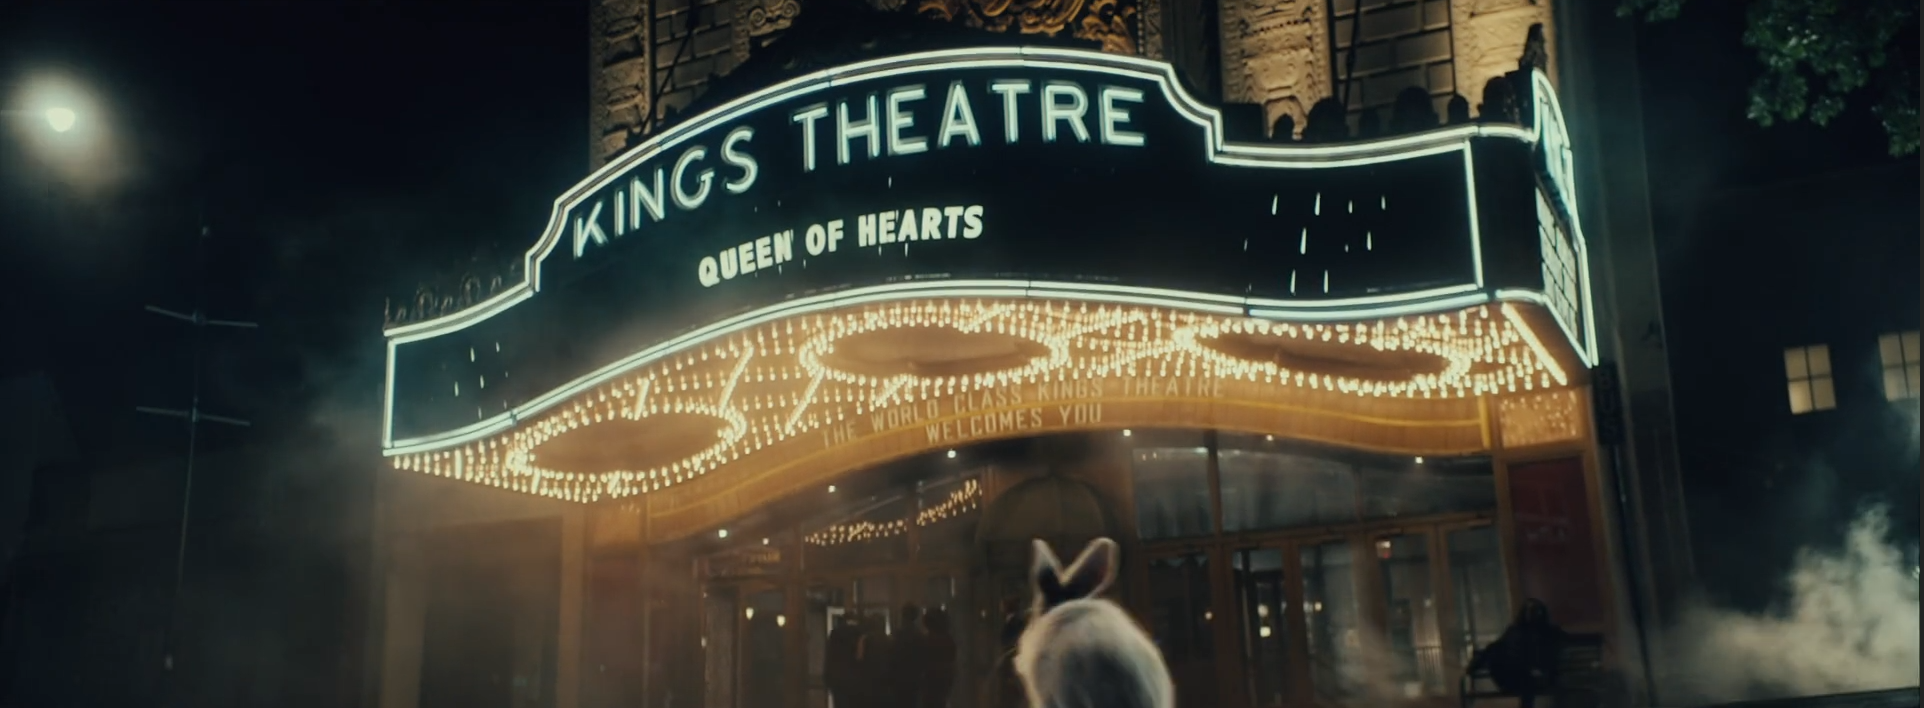 Kings Theatre.png